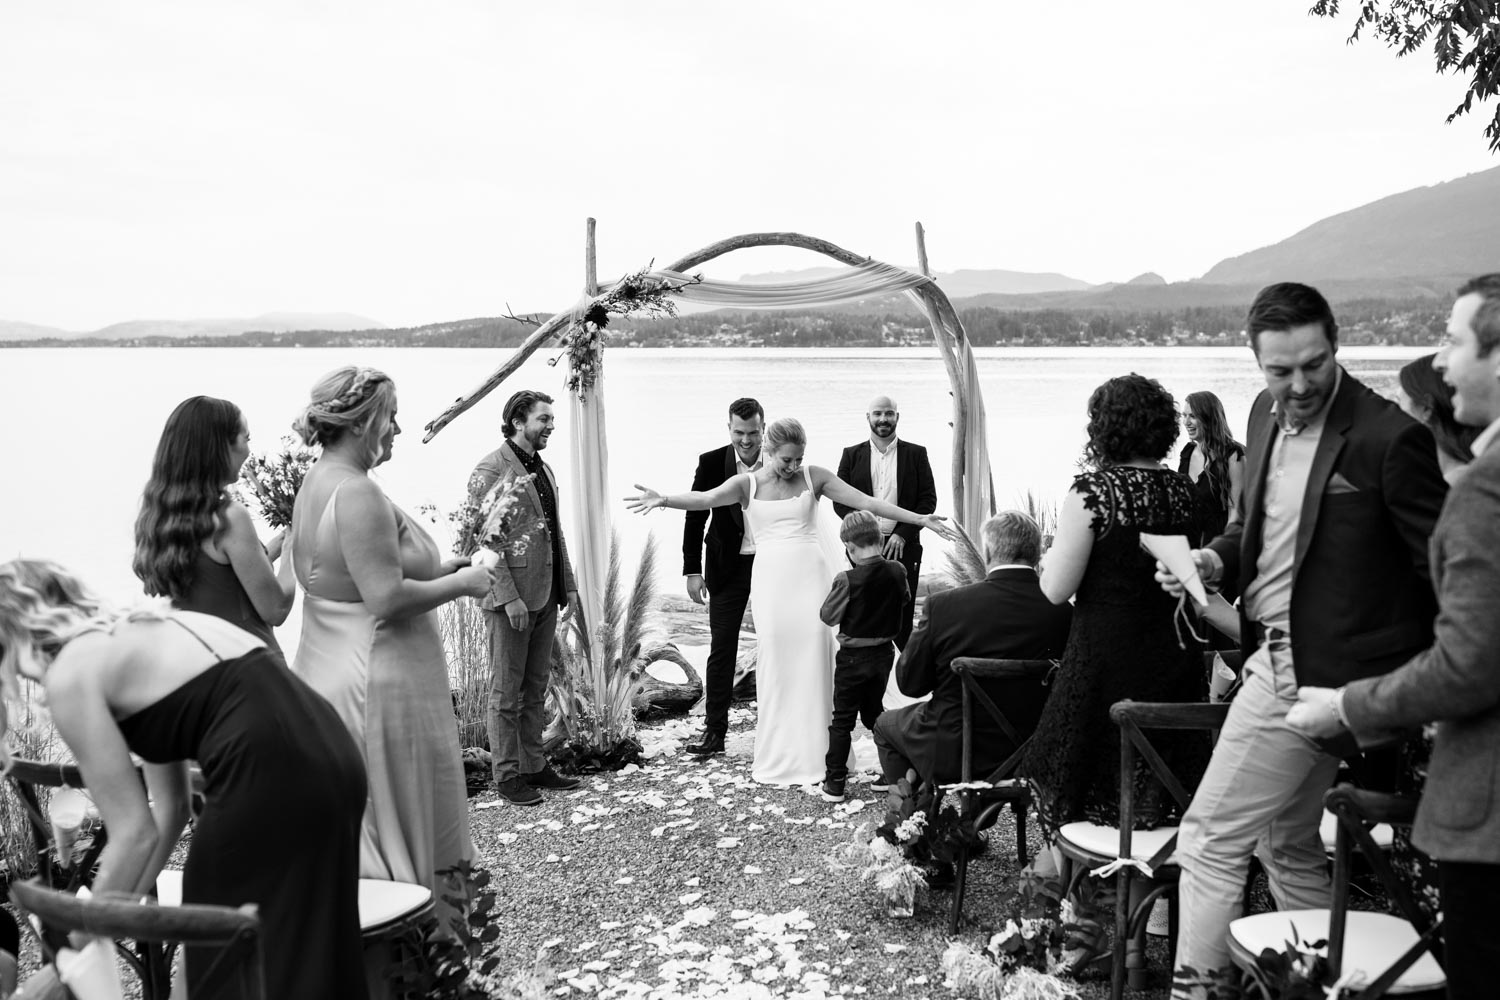 Bride and groom get married at the beach on Vancouver Island under wooden arch decorated with dusty pink fabric, raw cotton stems, pampas grass and dried flowers